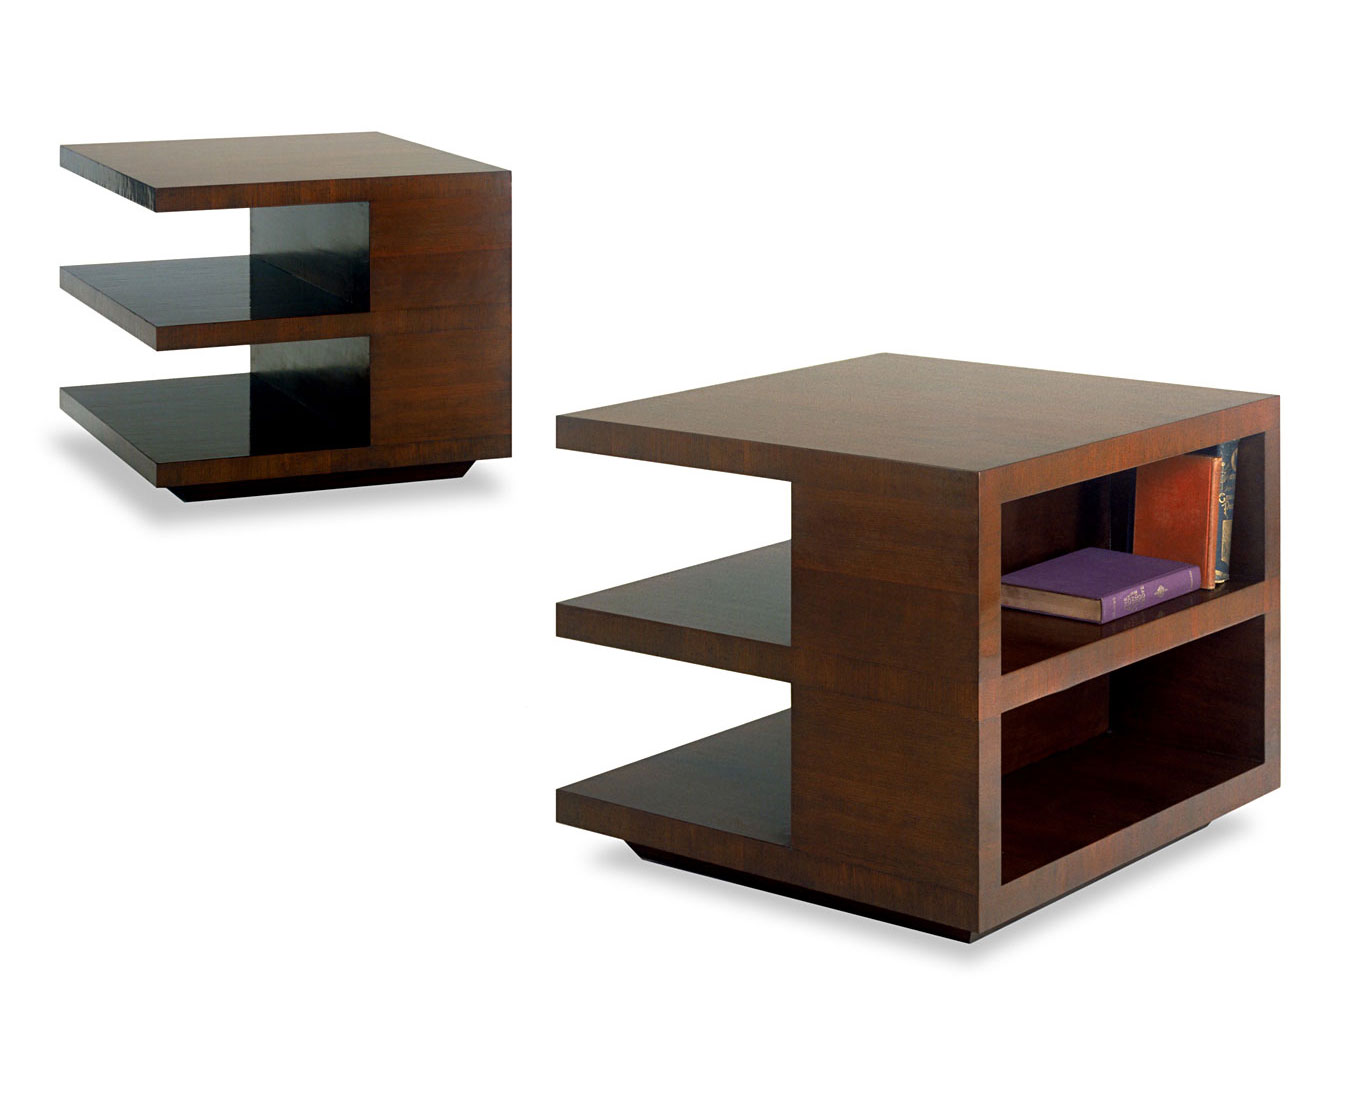 Sculley 3 Tiered Table